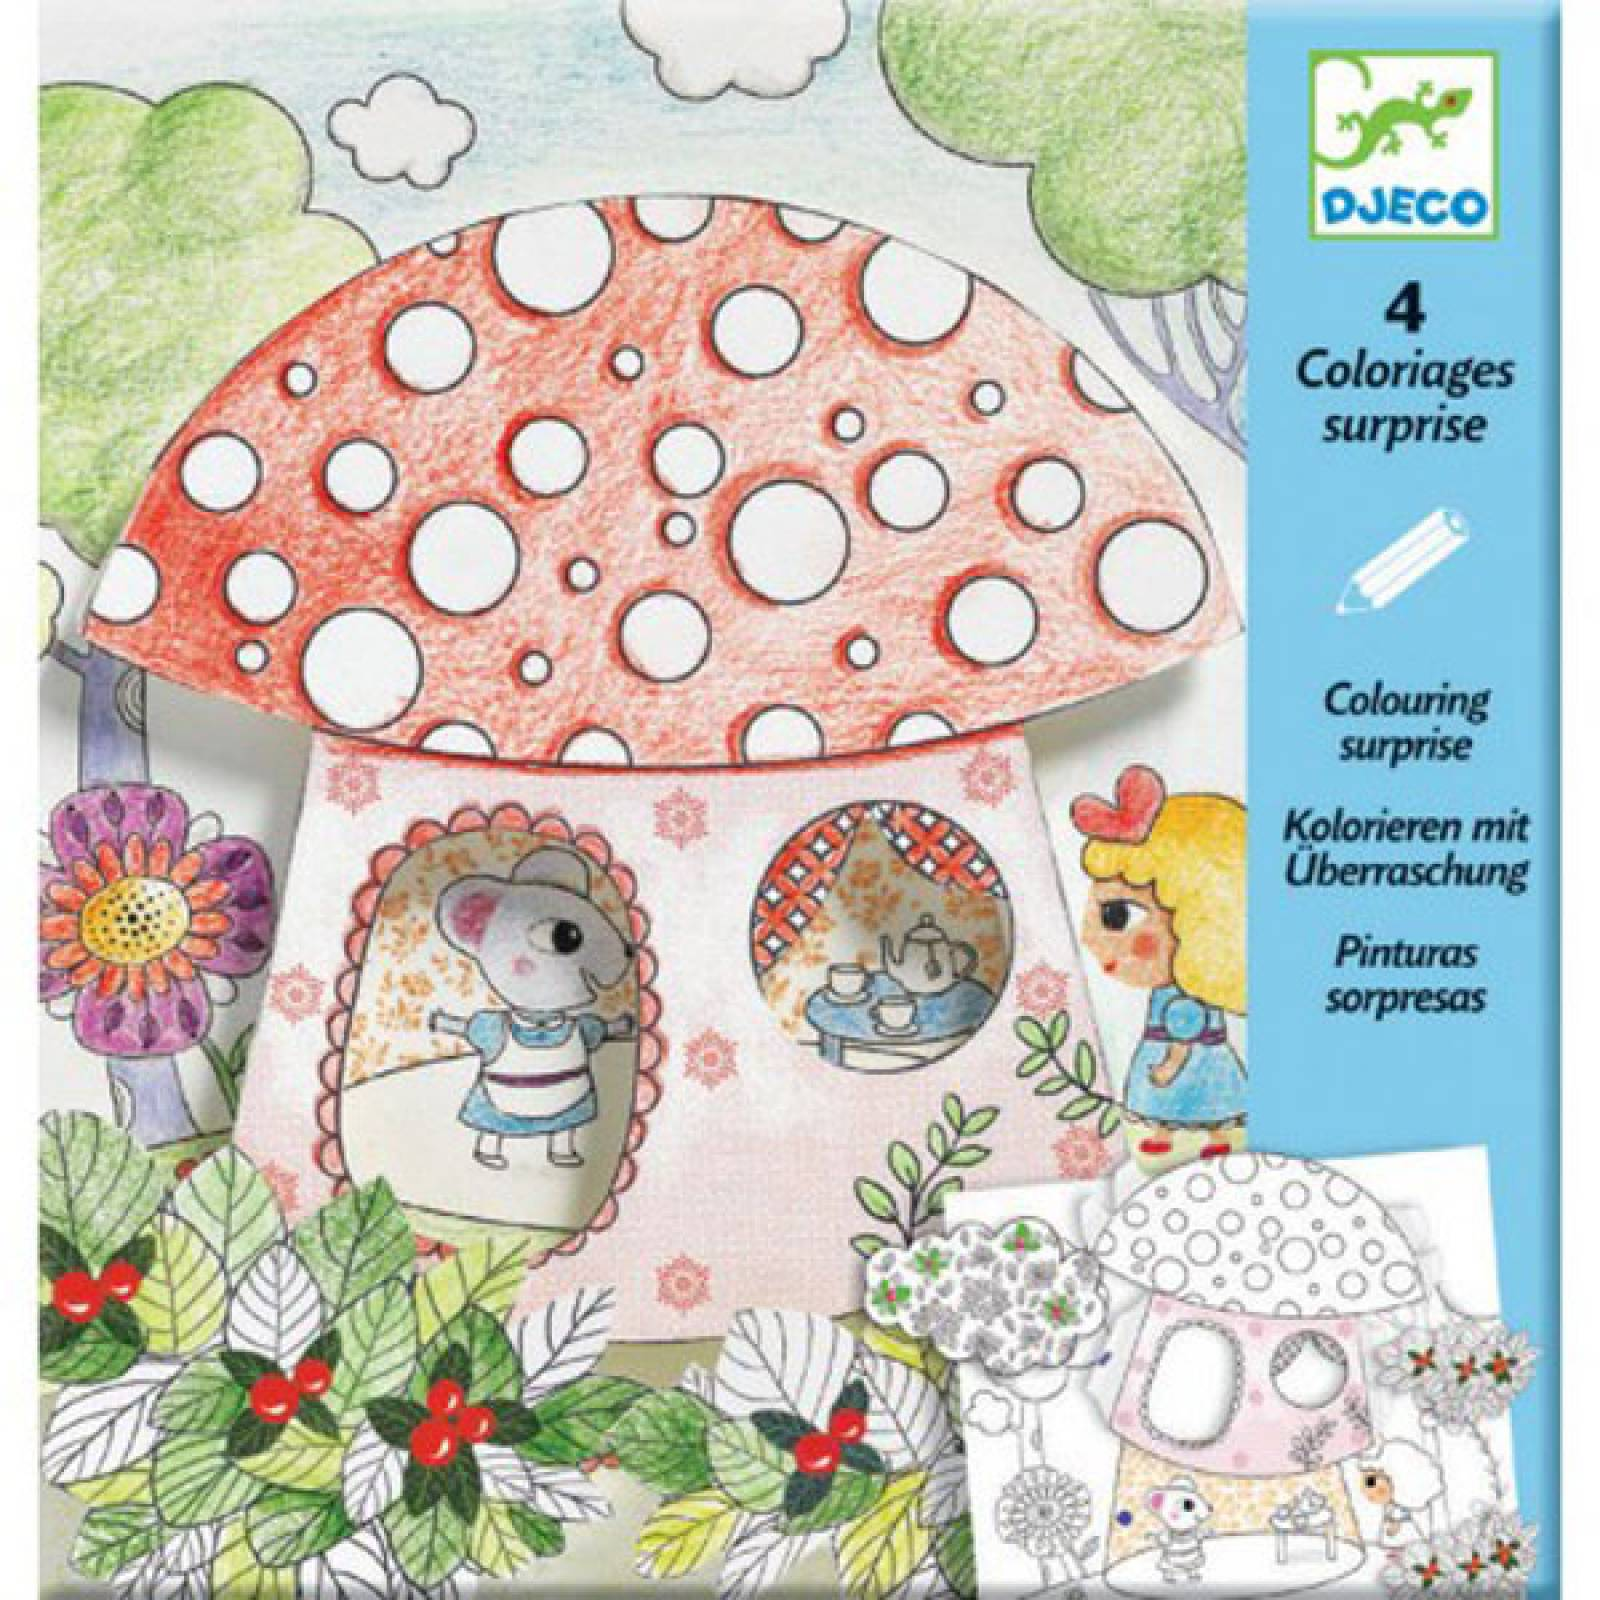 Thumbelina Colouring Surprise By Djeco 6-9yrs